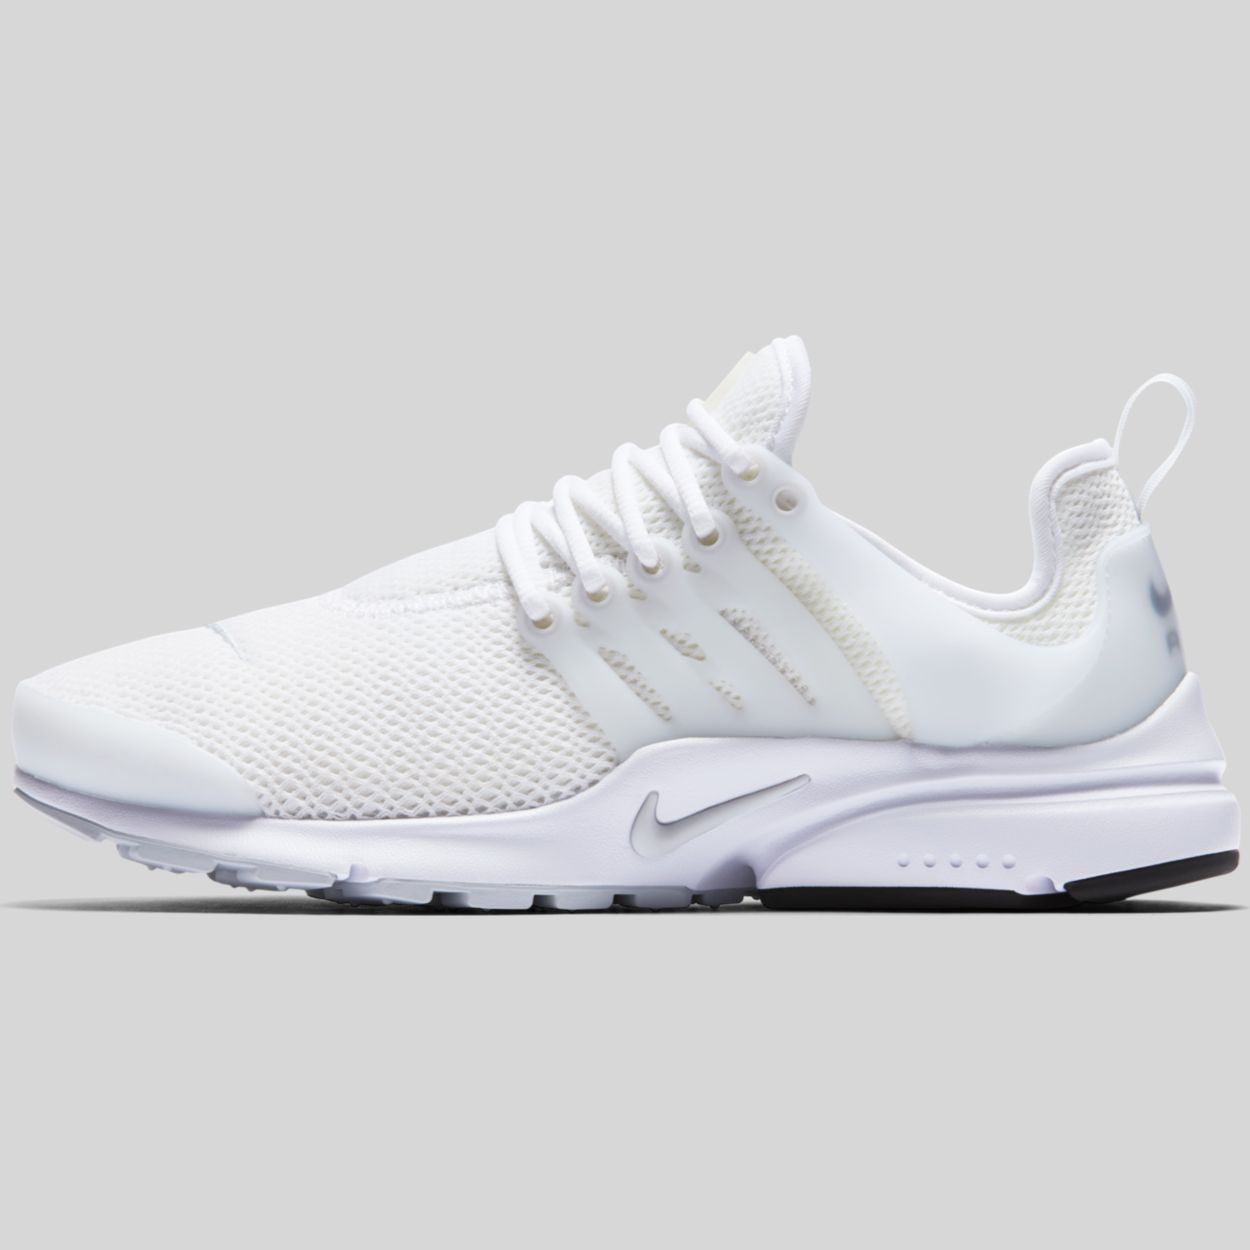 lowest price 6aefb bc60f ... cheapest nike wmsn air presto white pure platinum 878068 100 d24df 90ae9